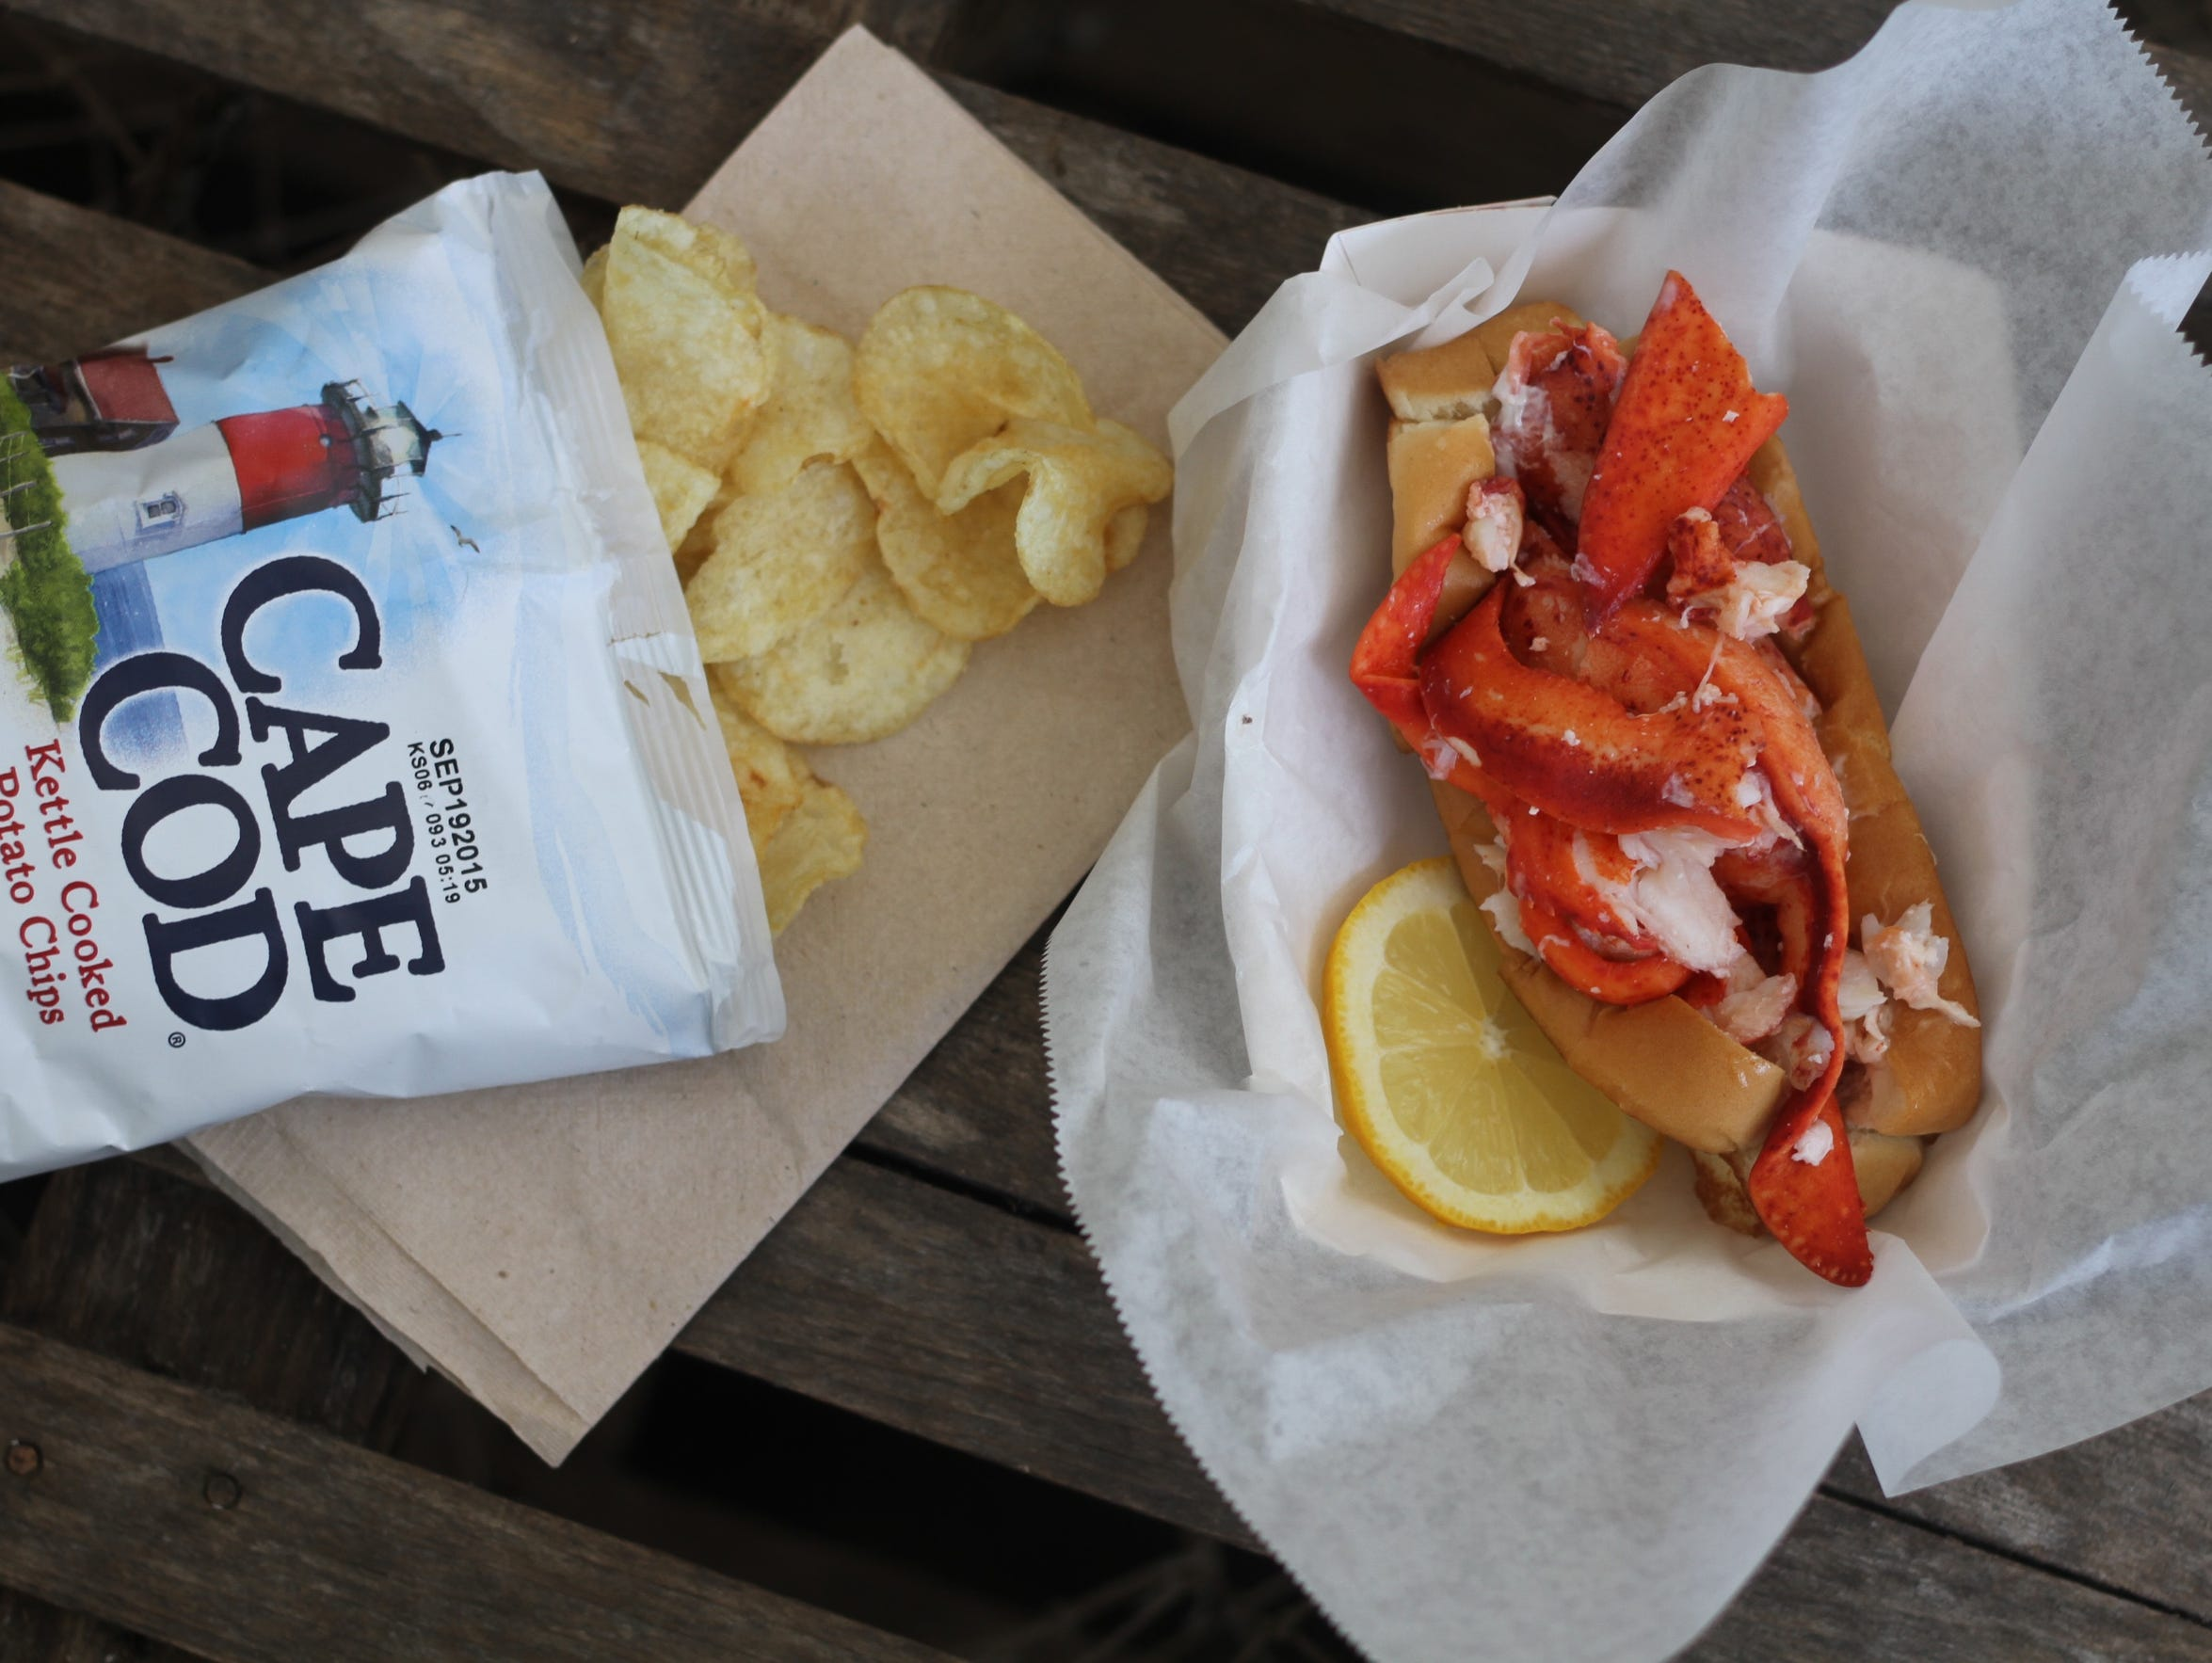 The Connecticut lobster roll features Maine lobster